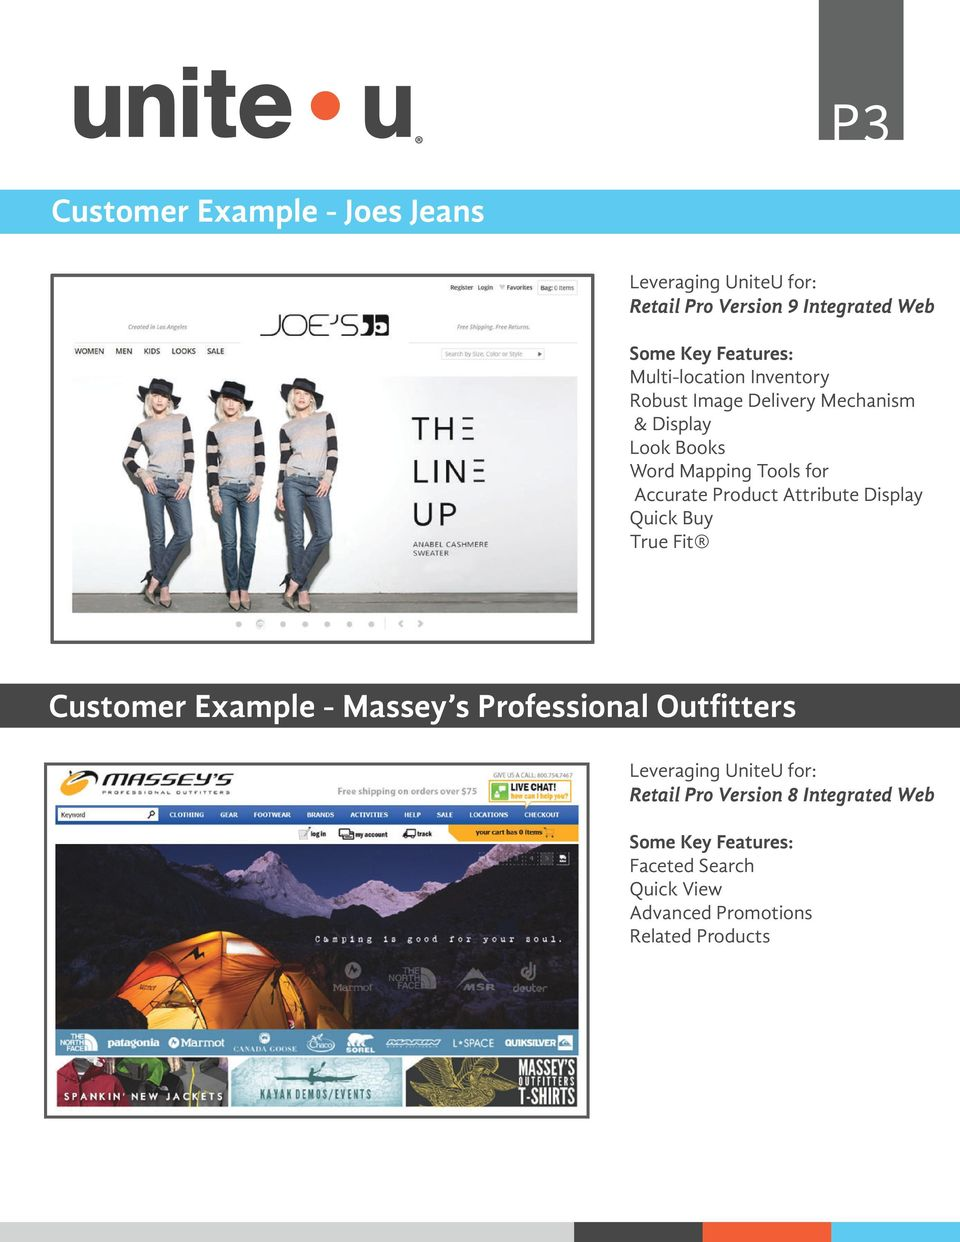 Attribute Display Quick Buy True Fit Customer Example - Massey s Professional Outfitters